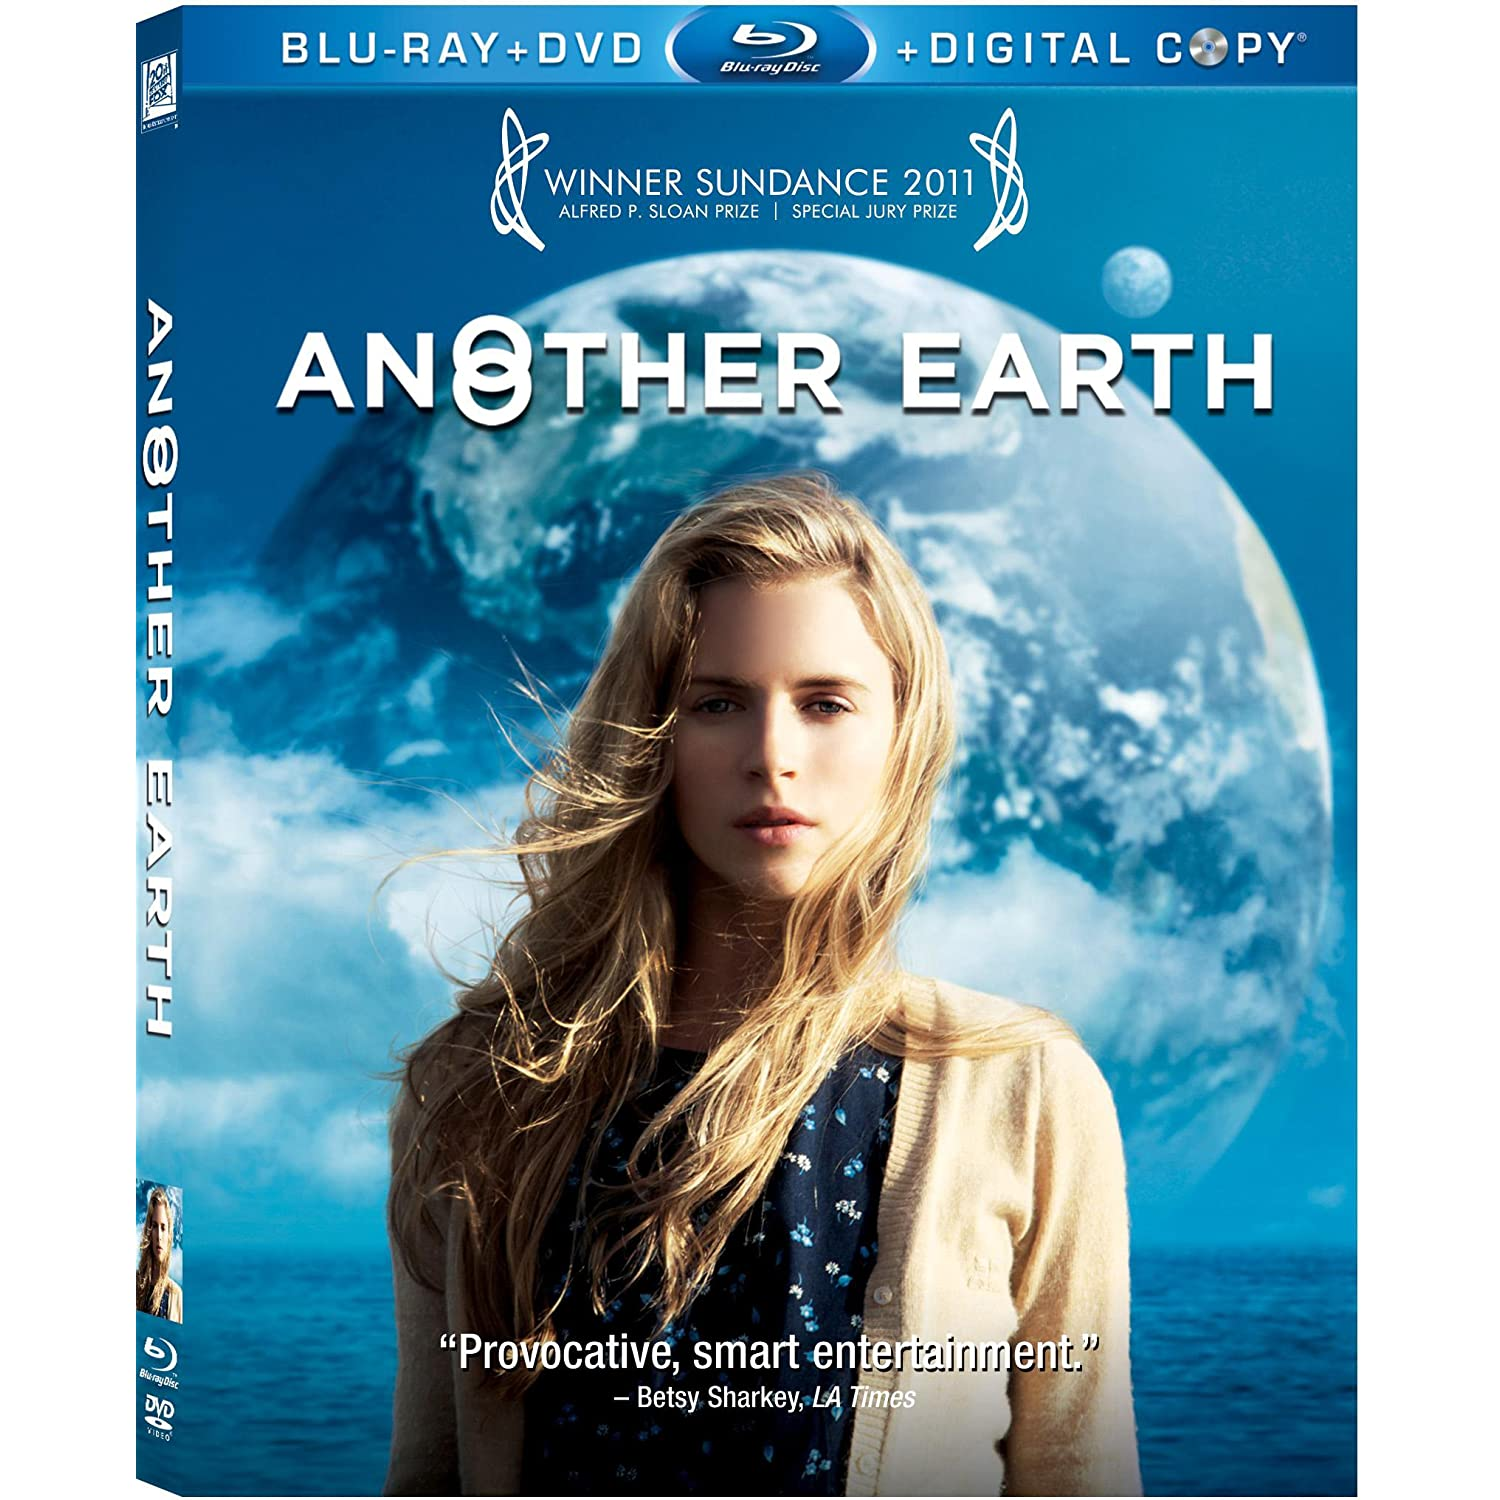 Another Earth [BDRIP] [VOSTFR] (Exclue) [FS]